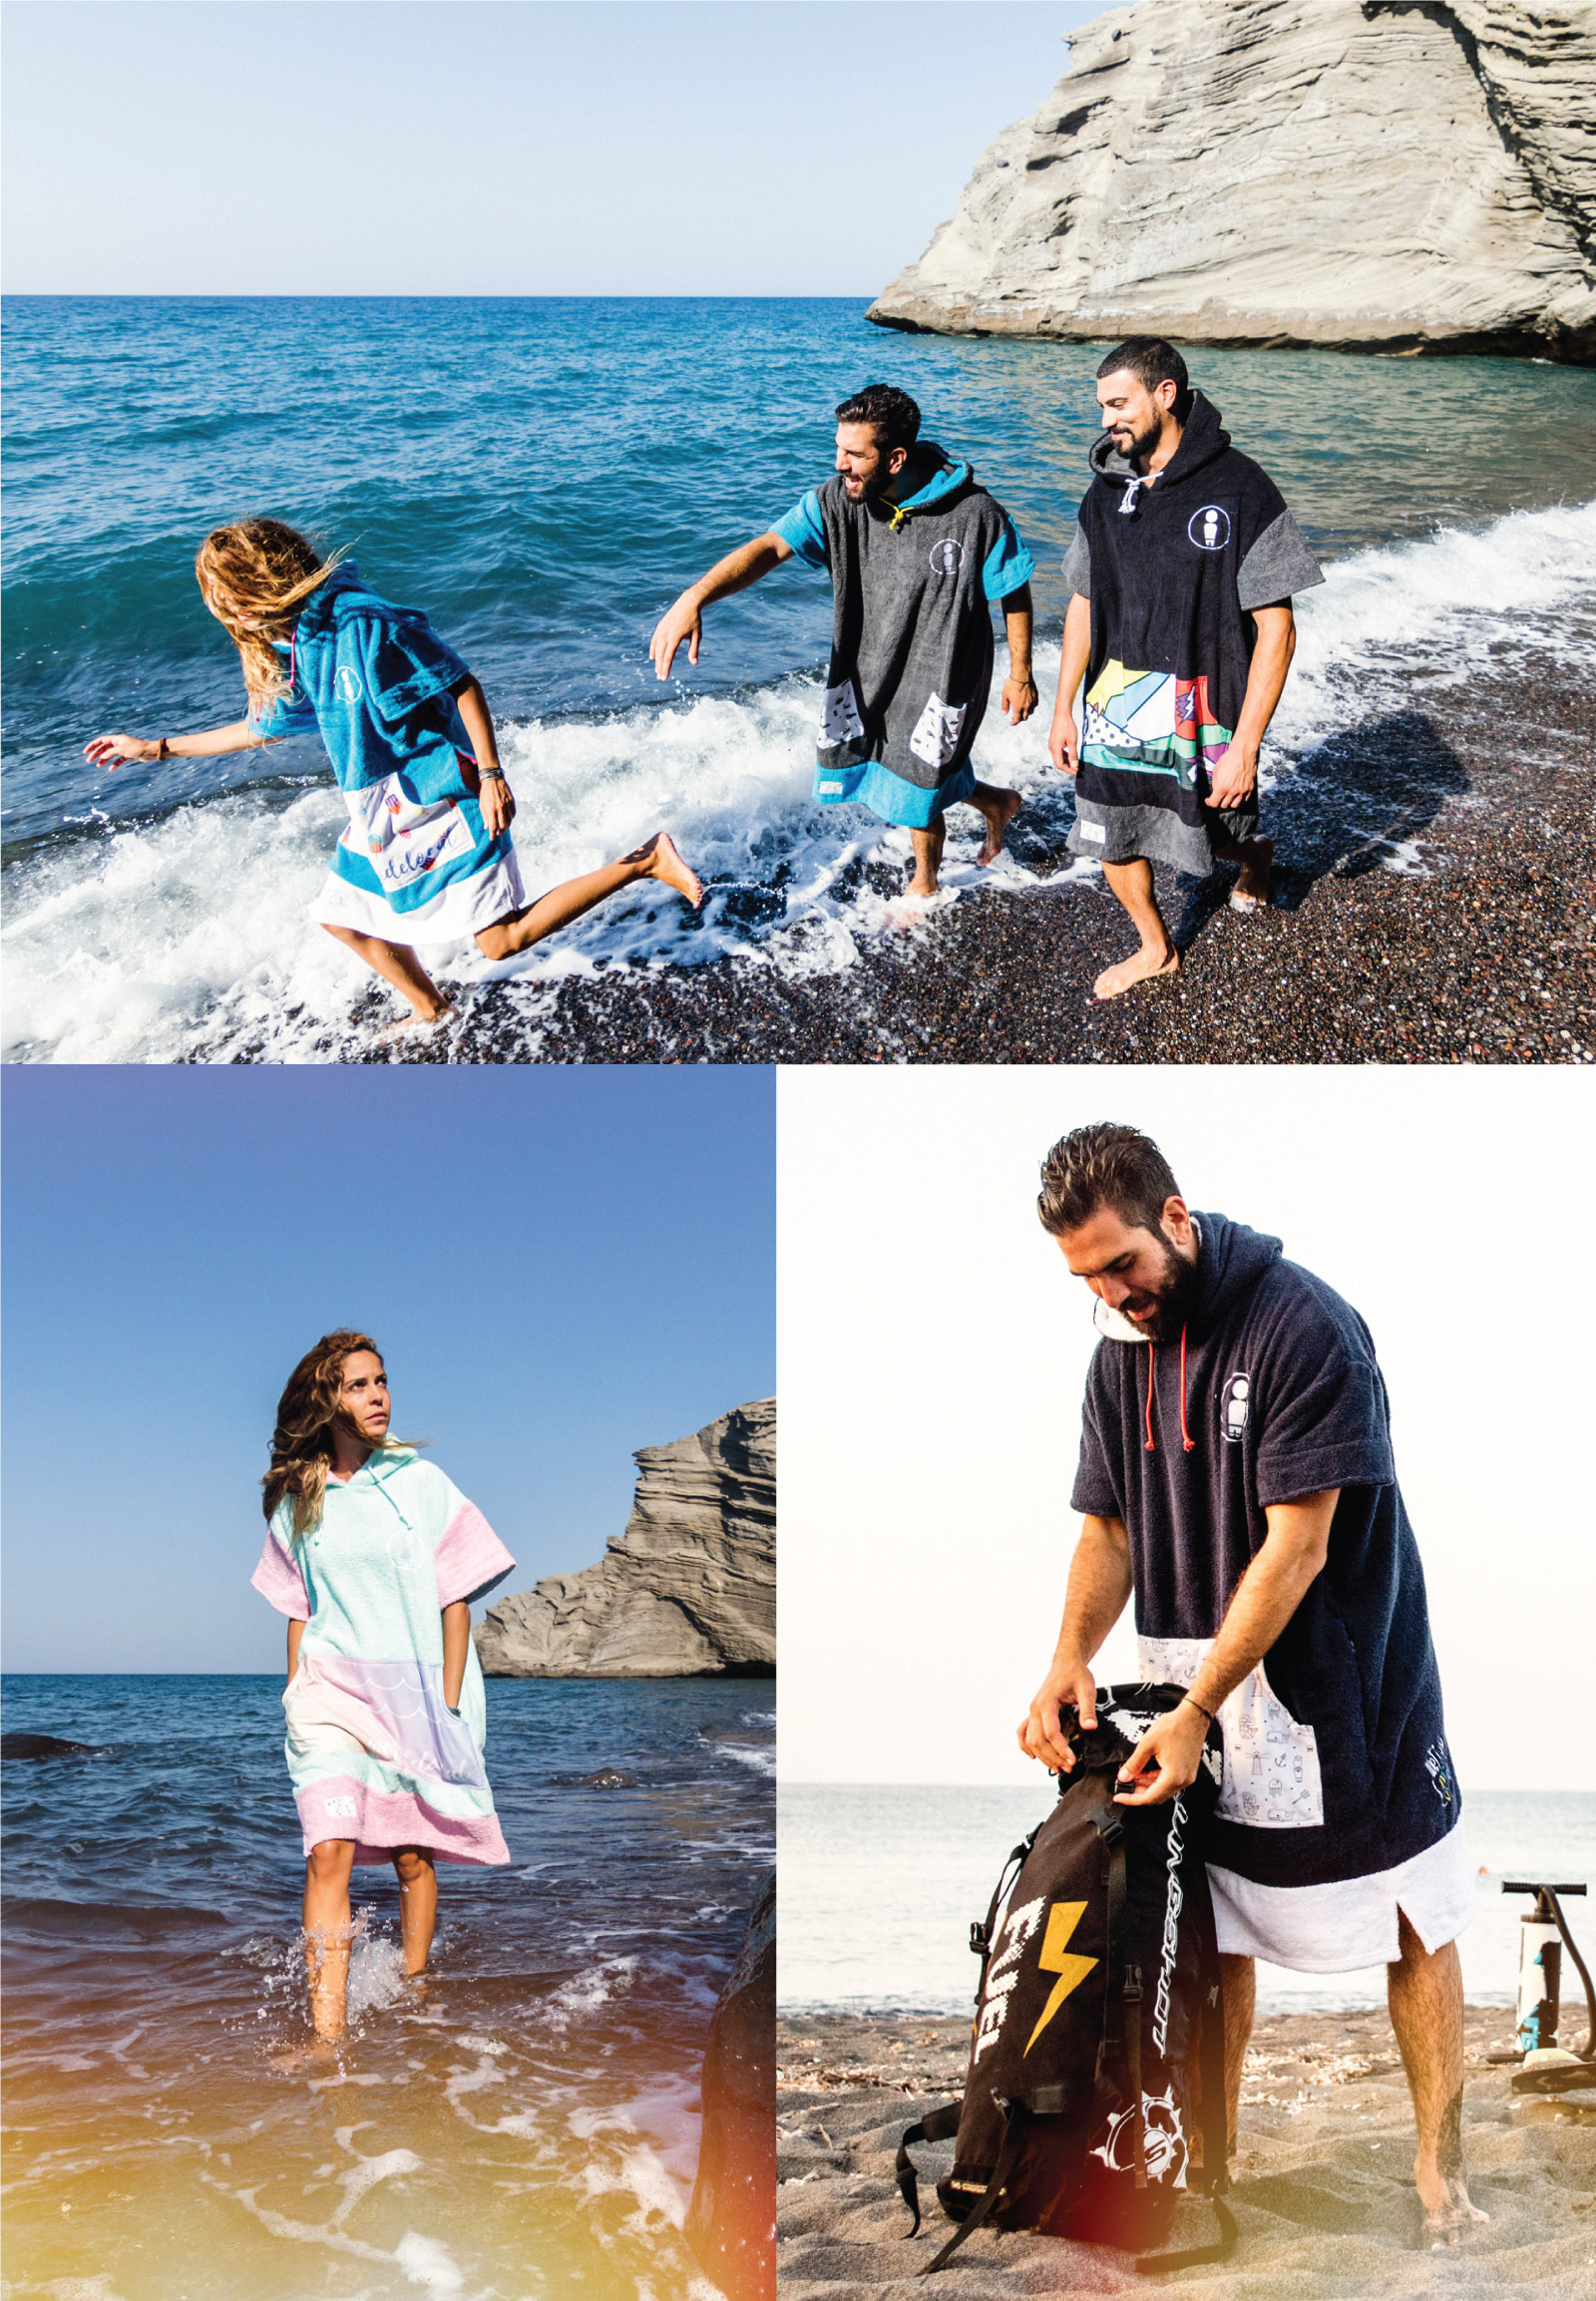 WWW.WERIDELOCAL.COM-MEN-WOMEN-SURF-PONCHO-COTTON-TOWEL